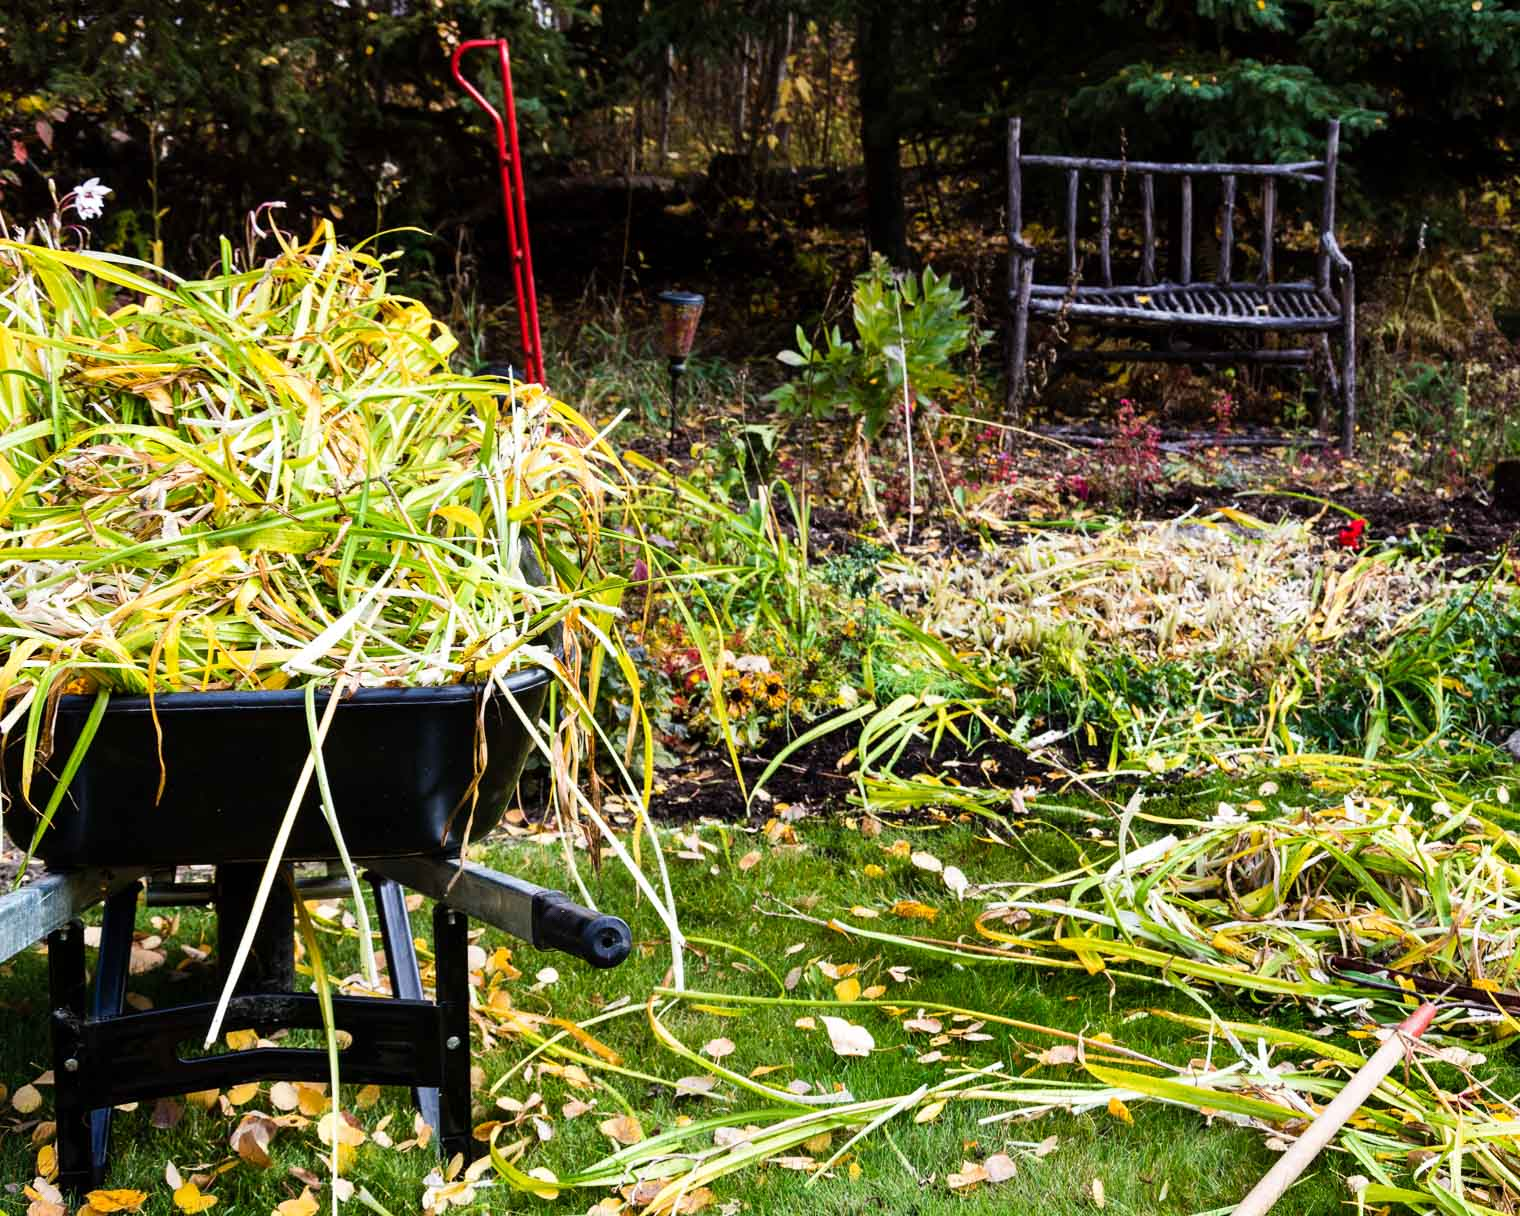 Autumn-Garden-Cleanup-39